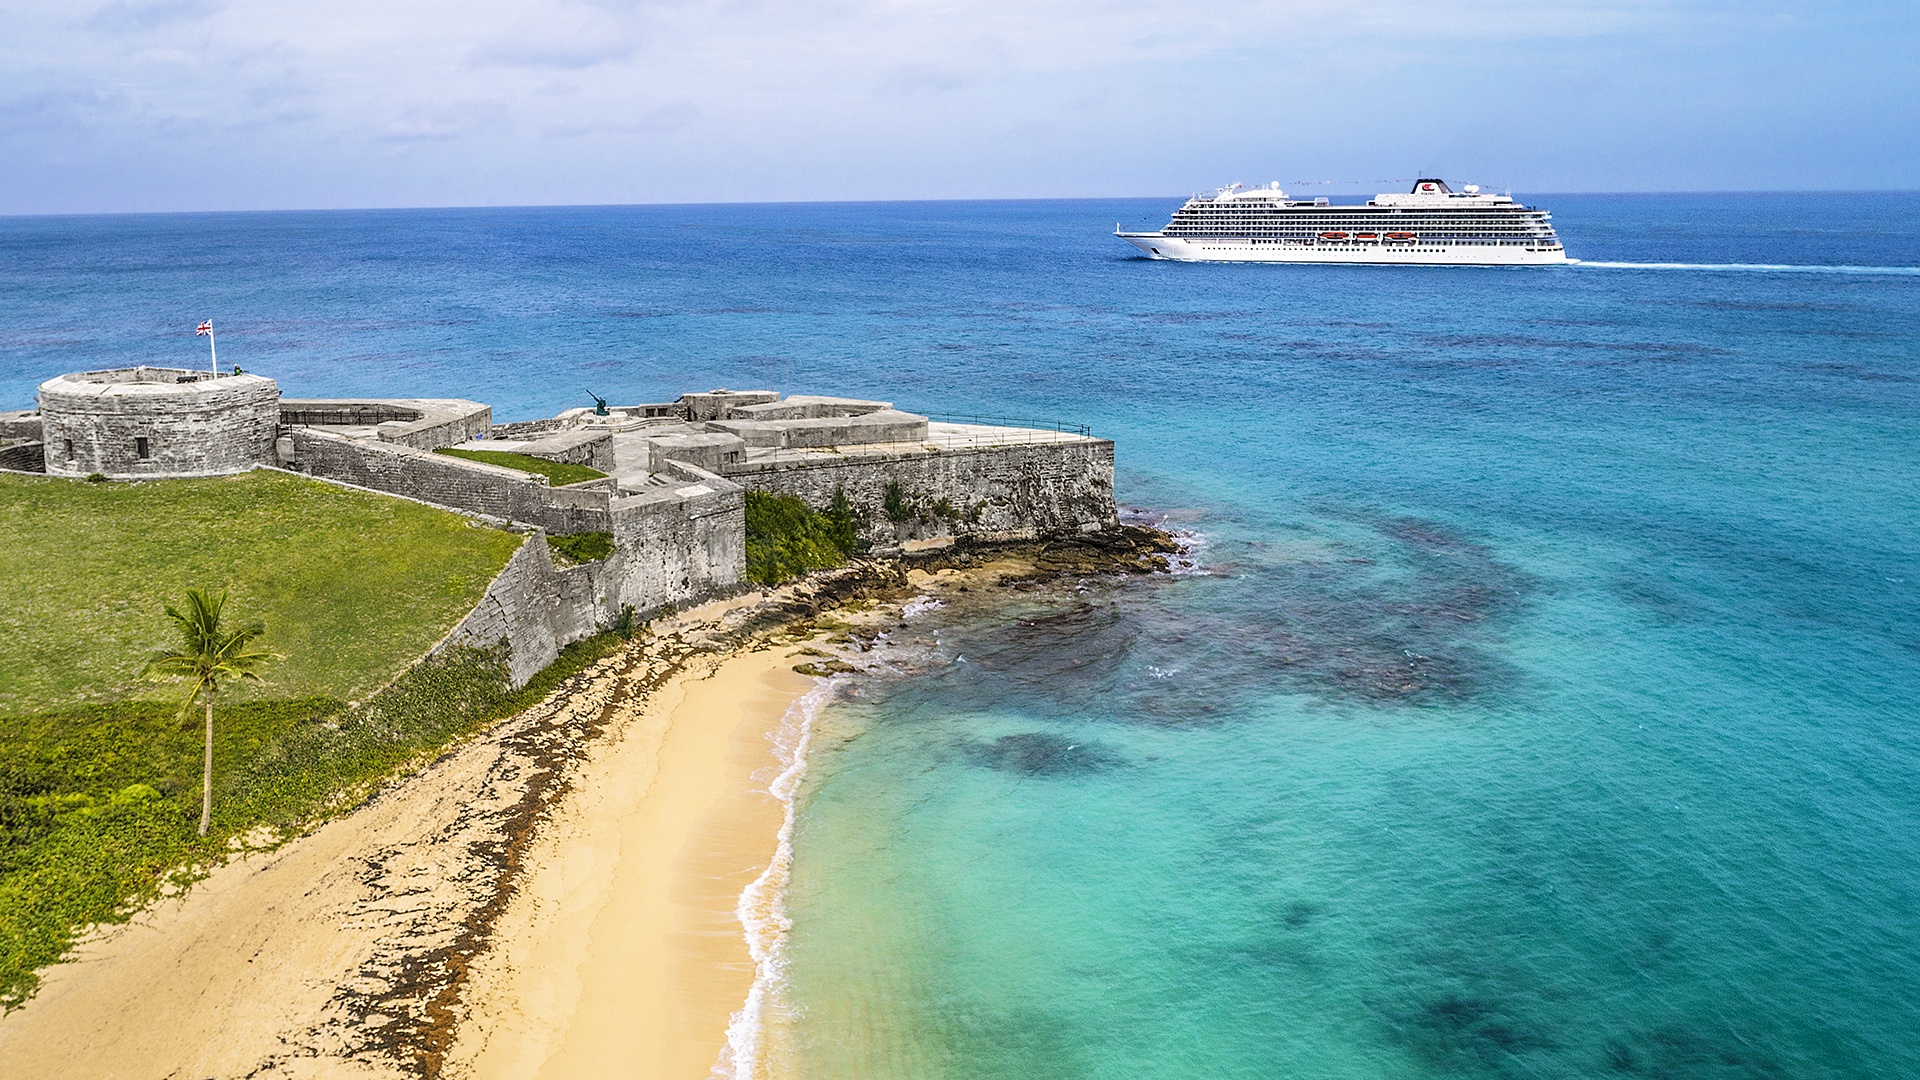 Viking Continues Restart With New Bermuda and Iceland Voyages